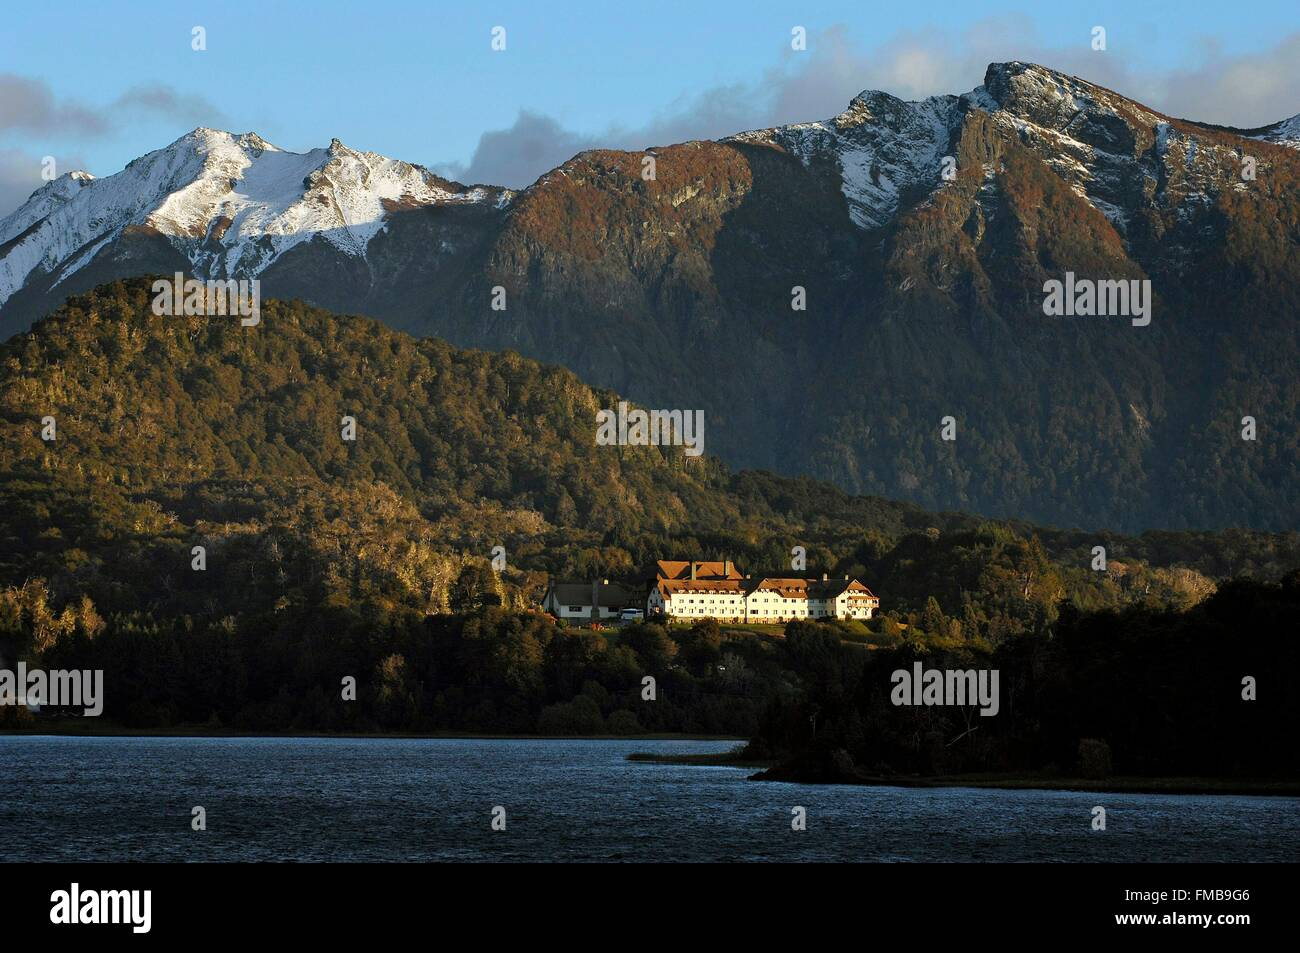 Argentina, Rio Negro province, San Carlos de Bariloche, general view with the Llao Llao Hotel, usually known as - Stock Image